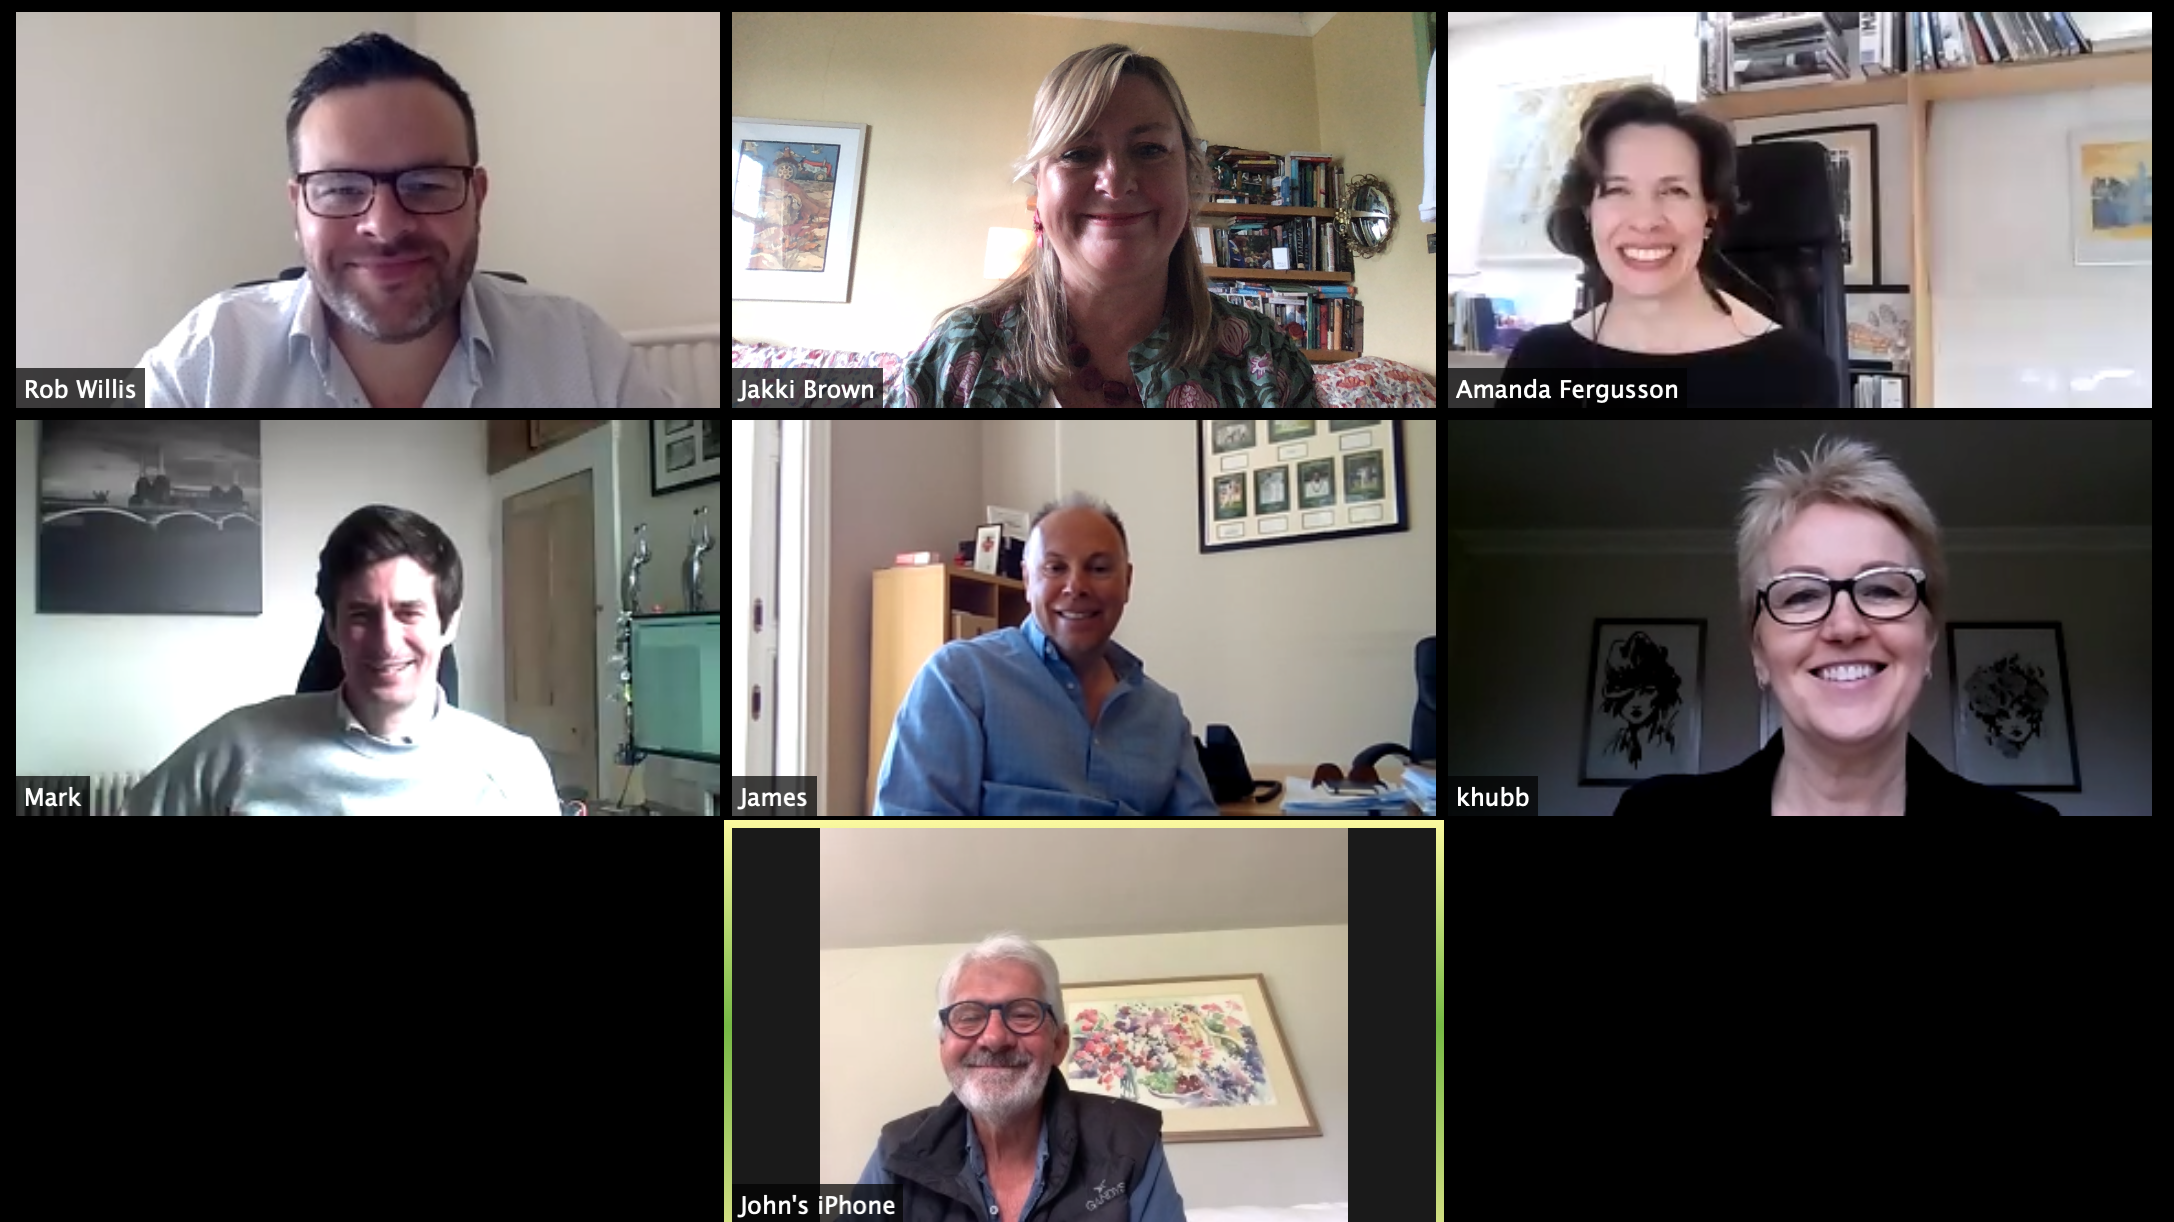 Above: Last week's PG Buzz.net Zoom meeting of some of the UK's leading retailers, including Karen Hubbard (of Card Factory), Paul Taylor (of Cardzone), John Procter (of Scribbler) and Mark Janson-Smith (of Postmark).